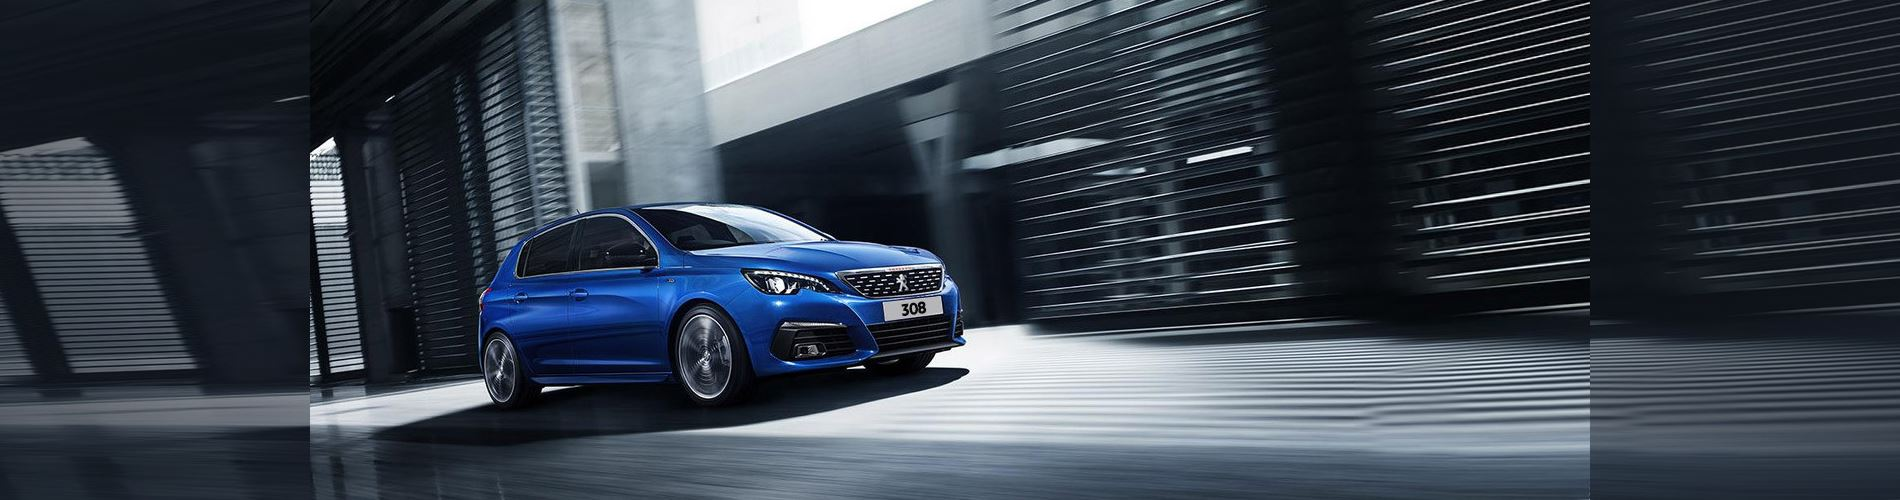 New Peugeot 308 Offer at Wycliffe Peugeot Rugby